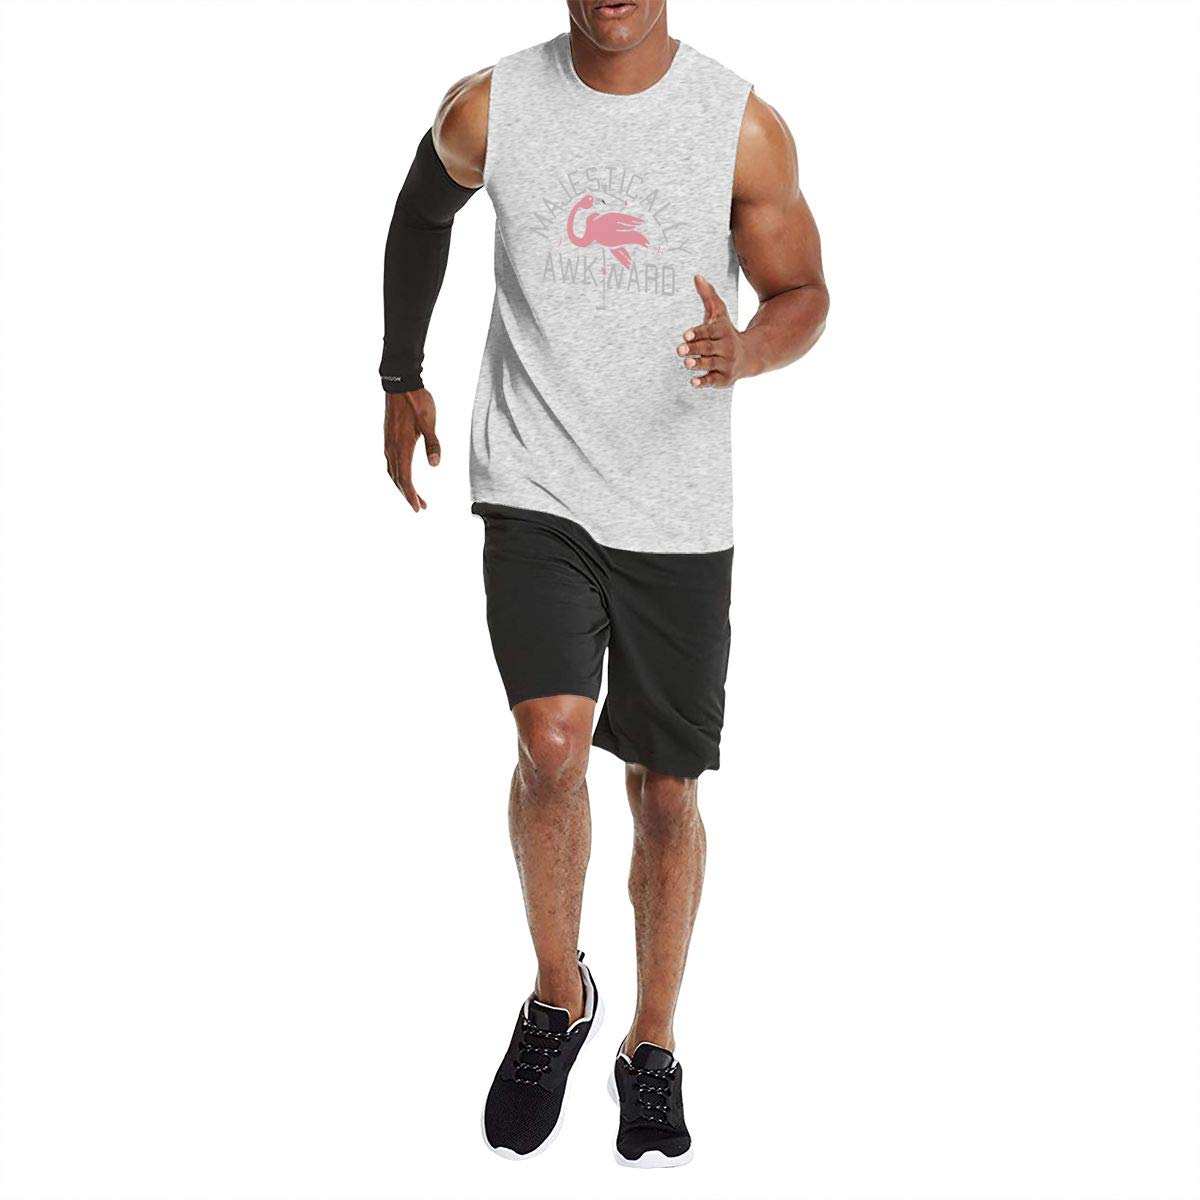 Majestically Awkward Flamingo Men Sleeveless Muscle T-Shirt Casual Cotton Tank Top for Sports